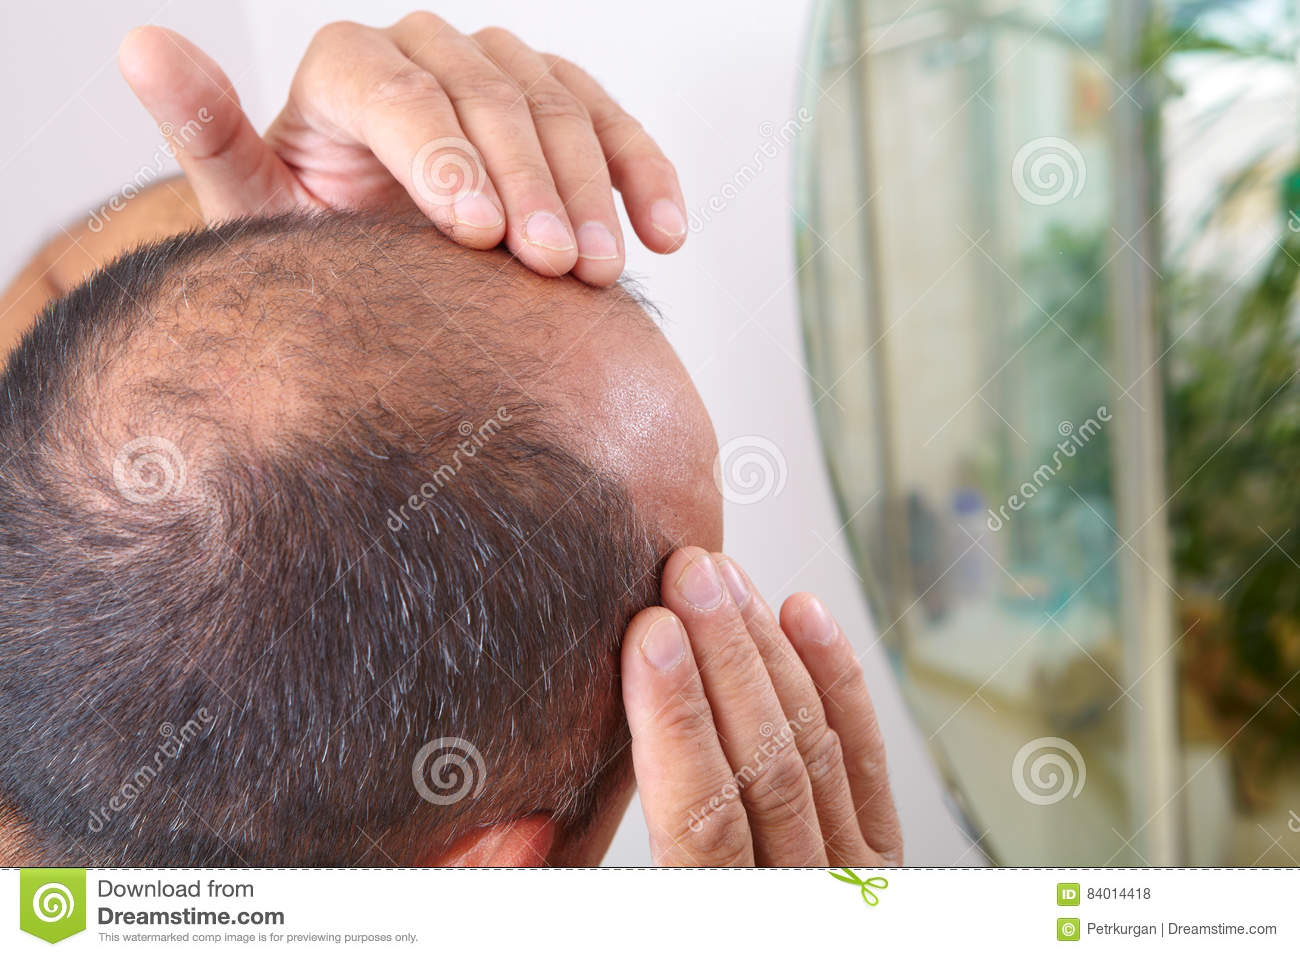 Senior Man And Hair Loss Issue Stock Photo - Image: 84014418